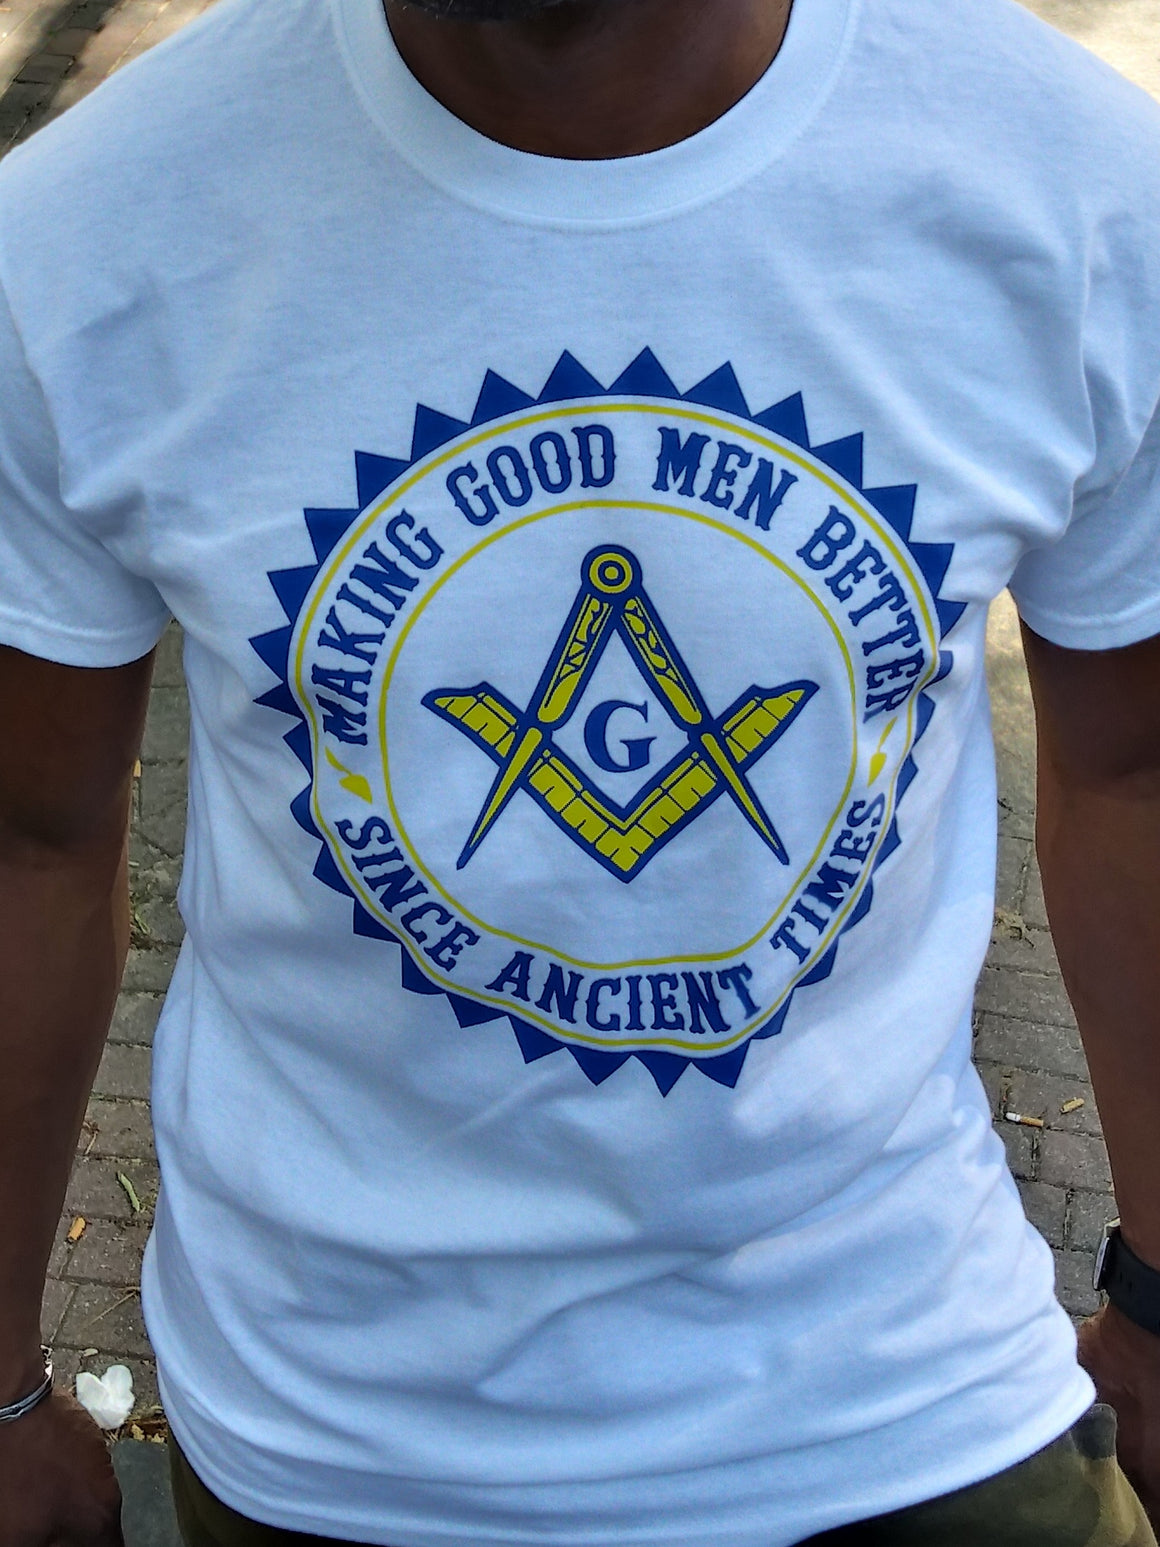 Making Good Men Better Mason Tee